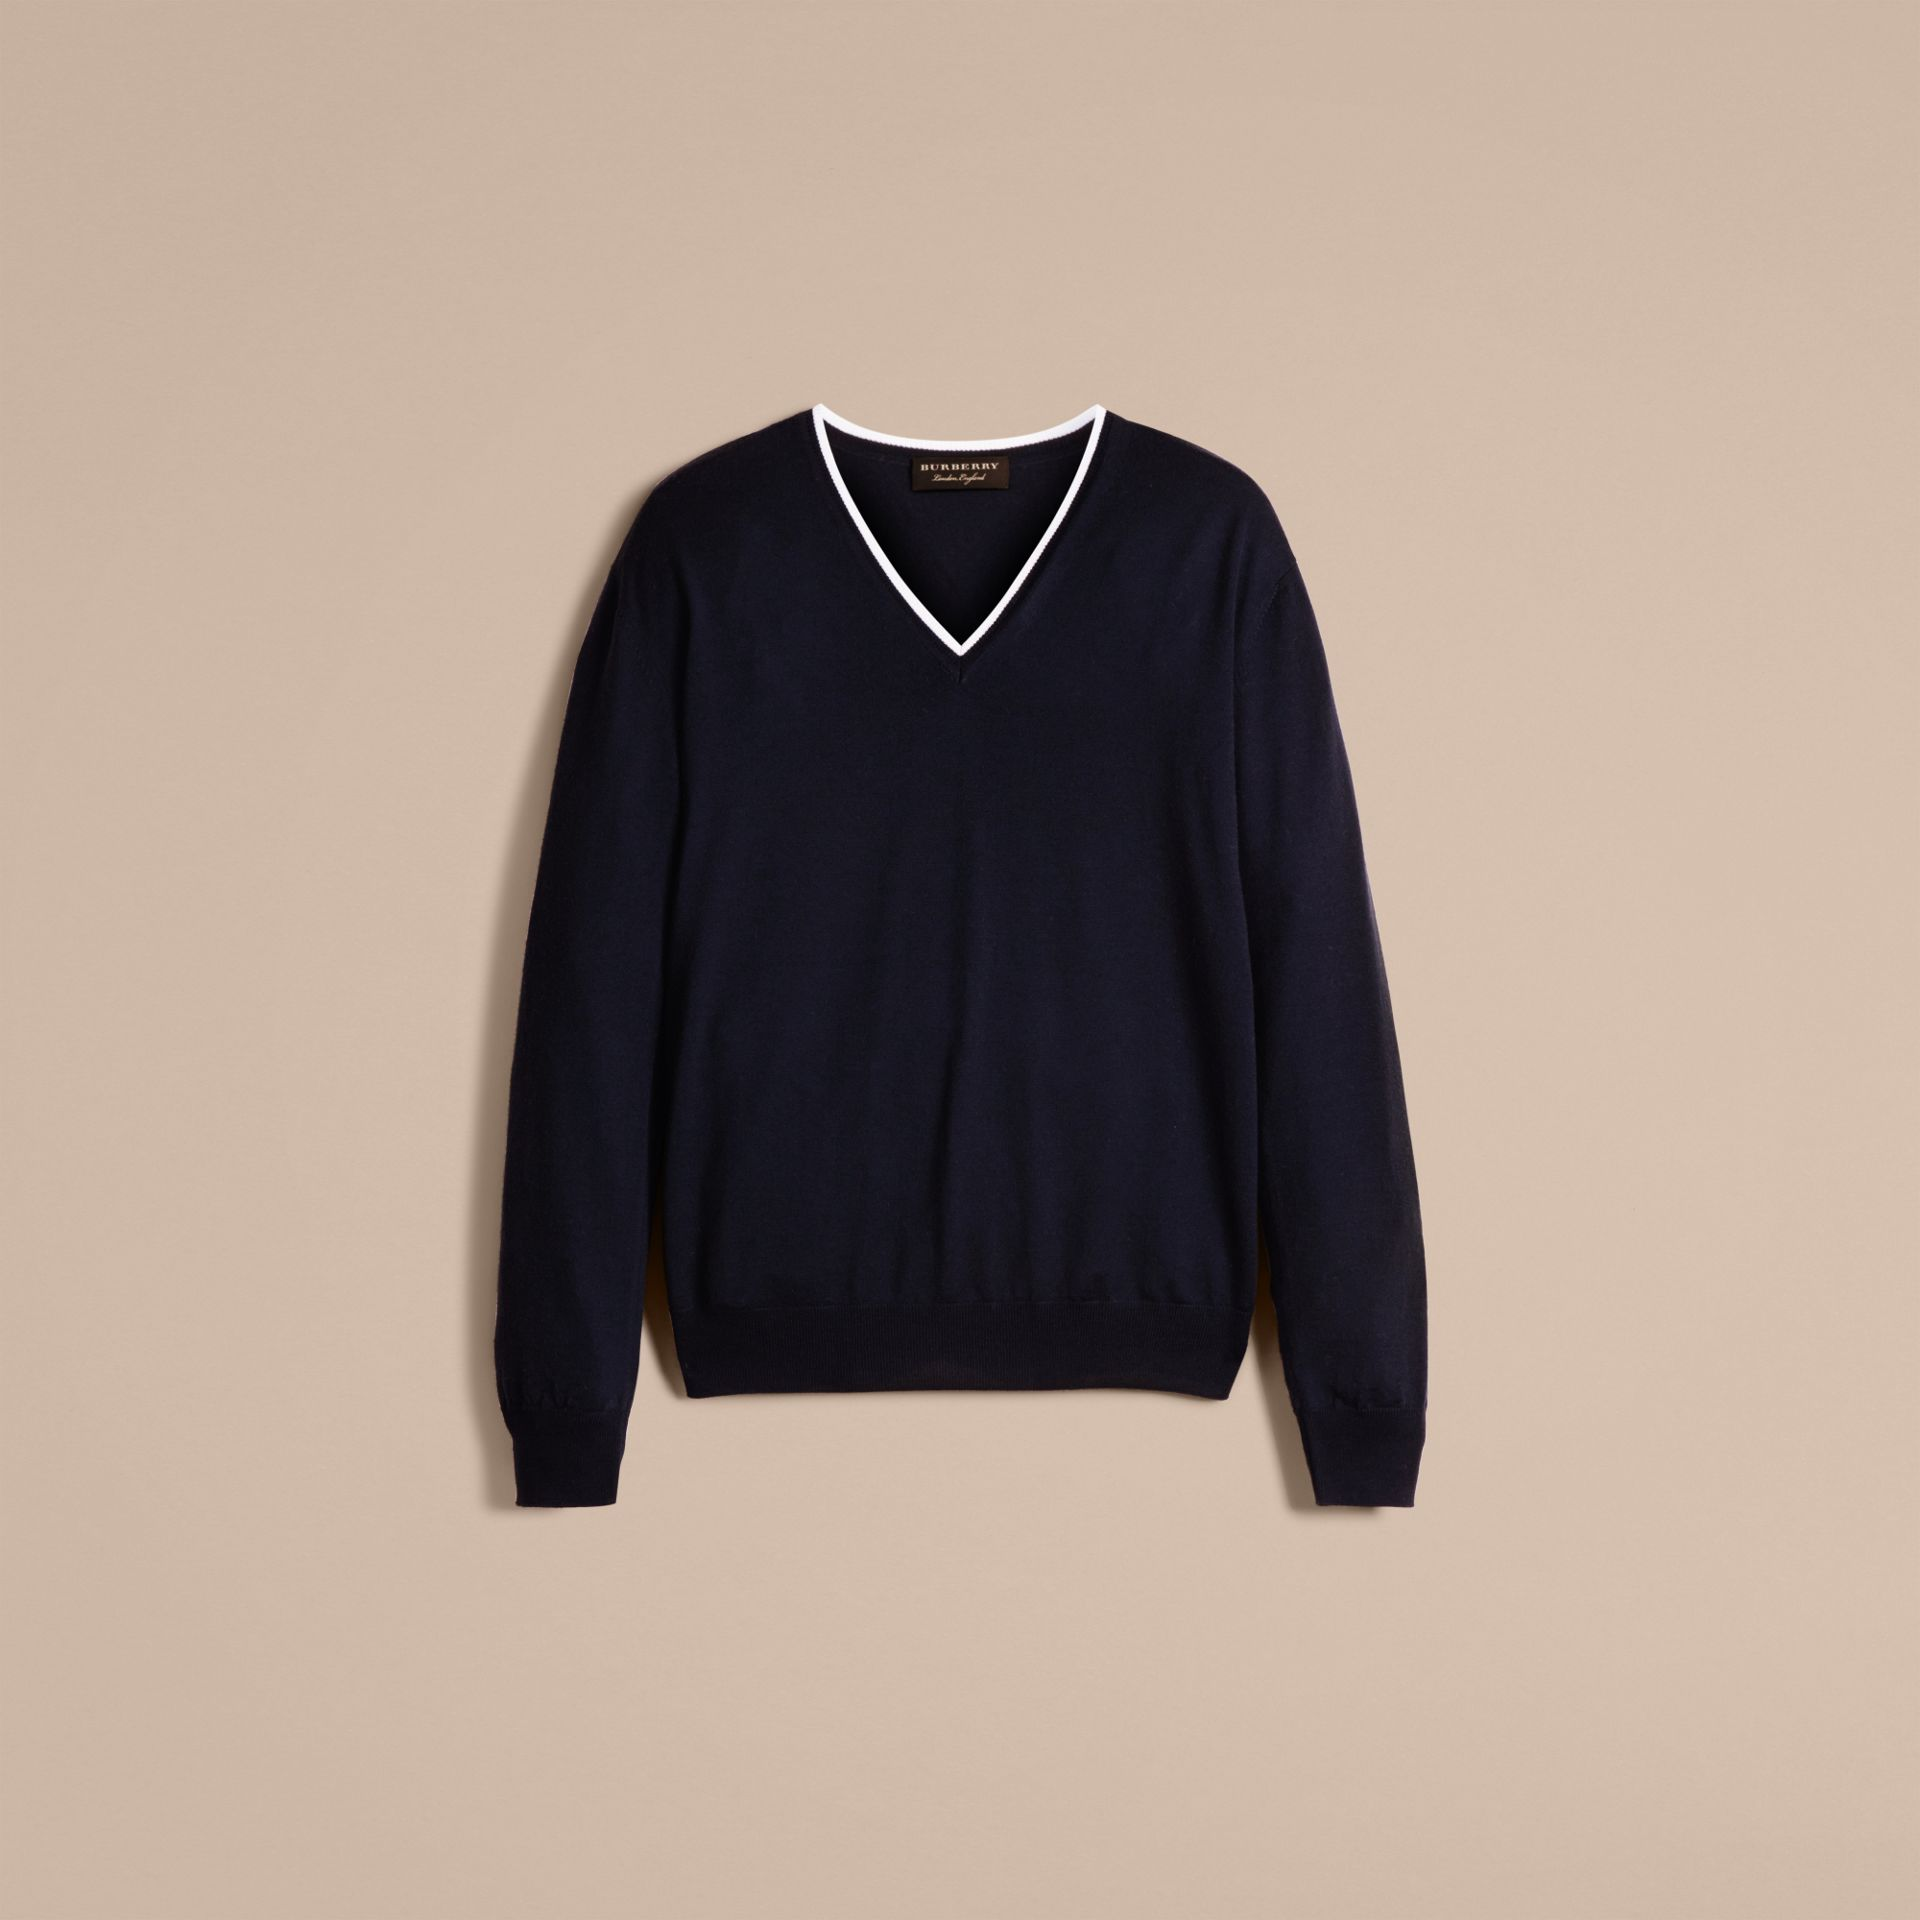 Navy/white Contrast Trim Wool V-neck Sweater - gallery image 4